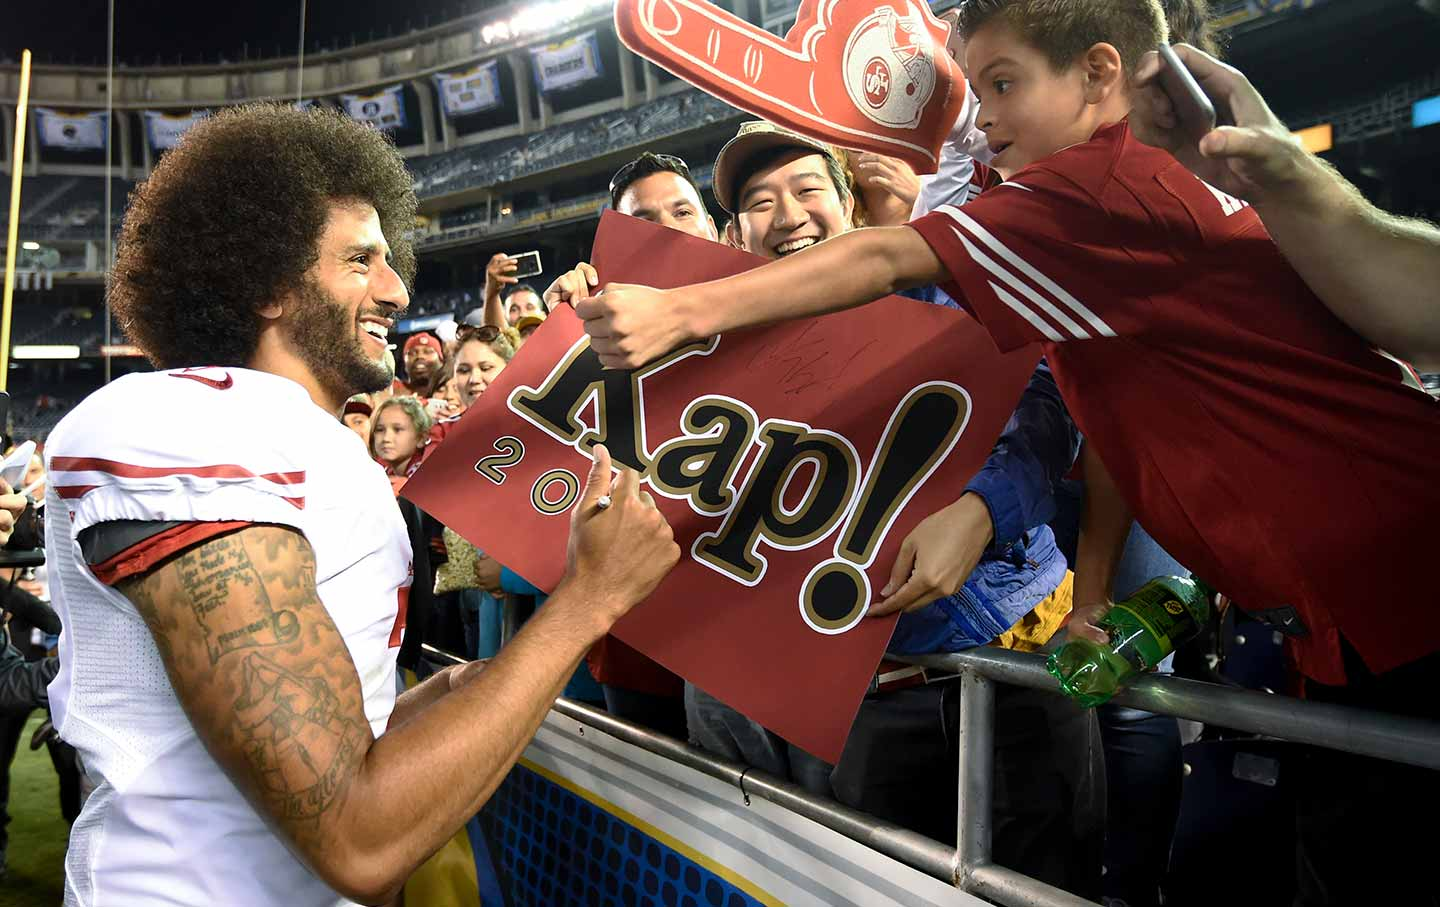 Colin Kaepernick Greeting Fan